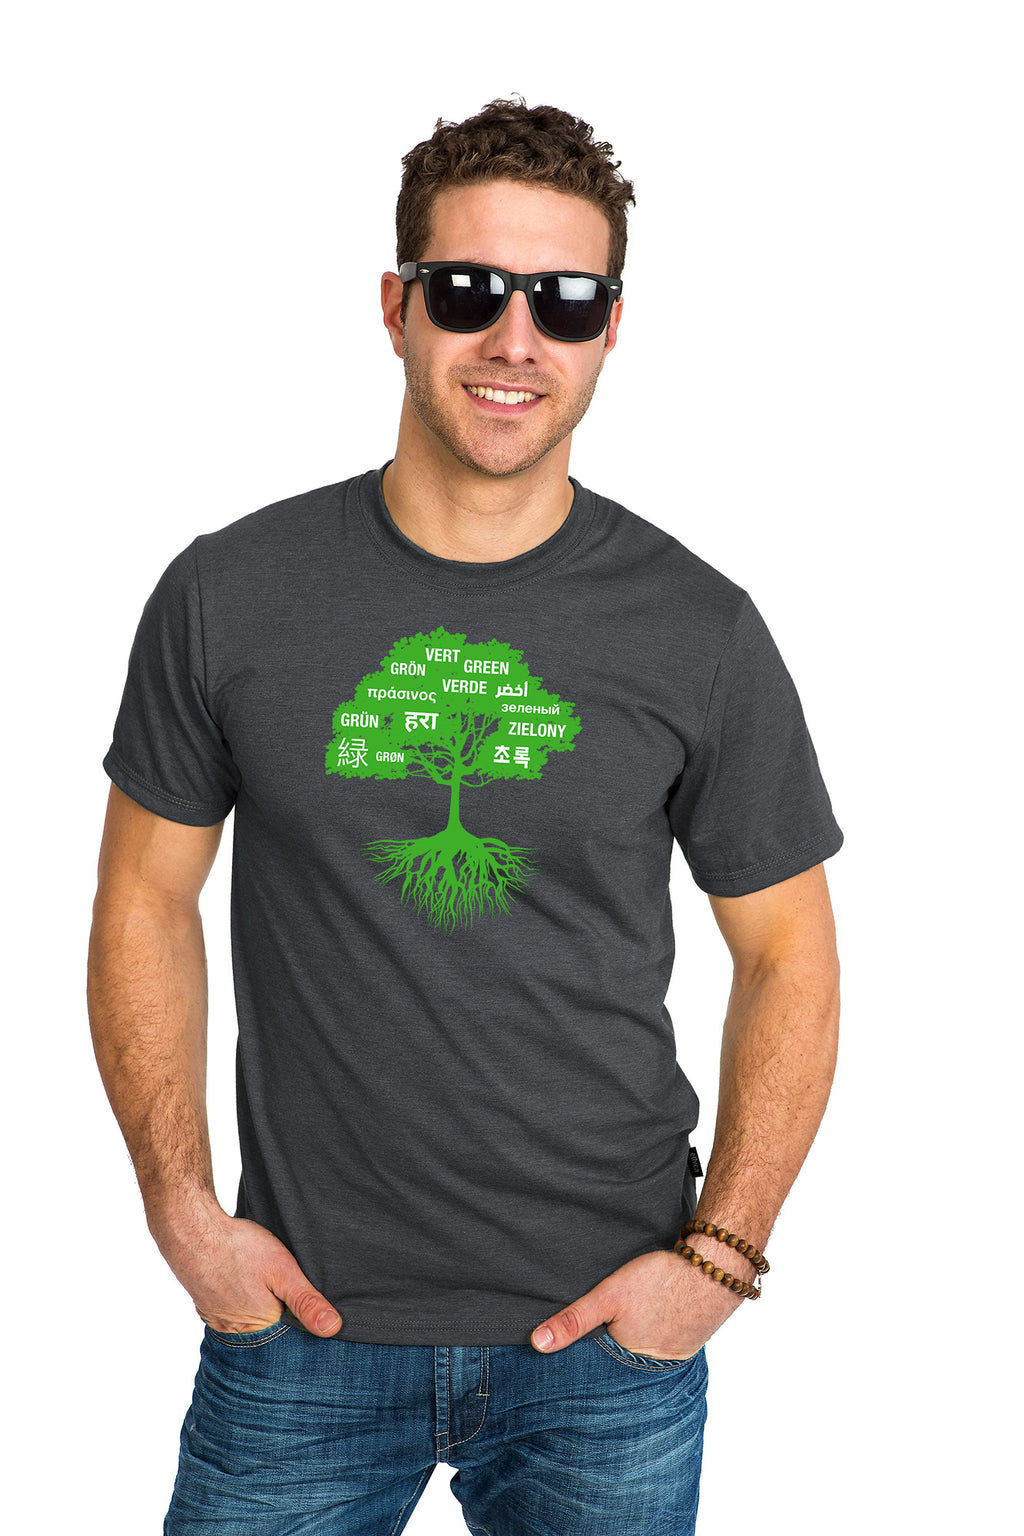 Green Tree Arbre vert T-shirt Organic cotton PLB